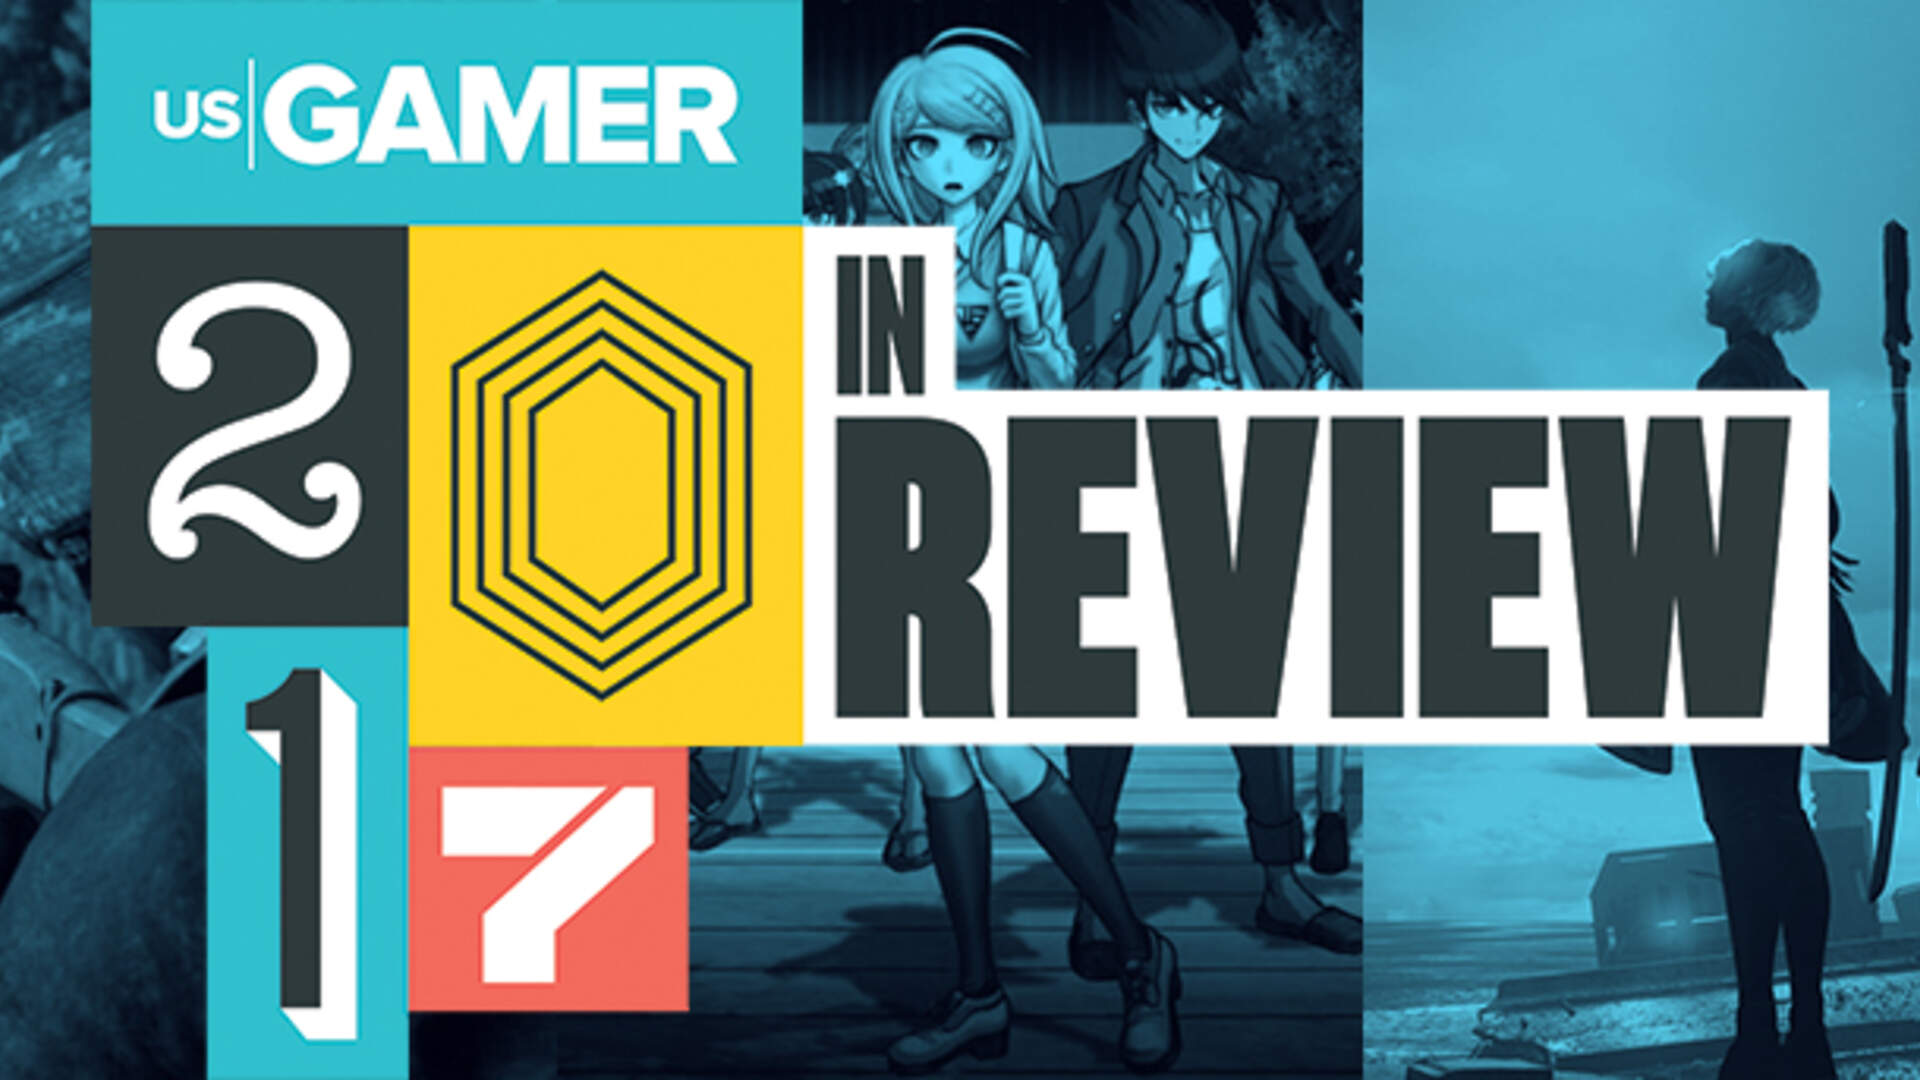 USgamer's 20 Best Games of 2017